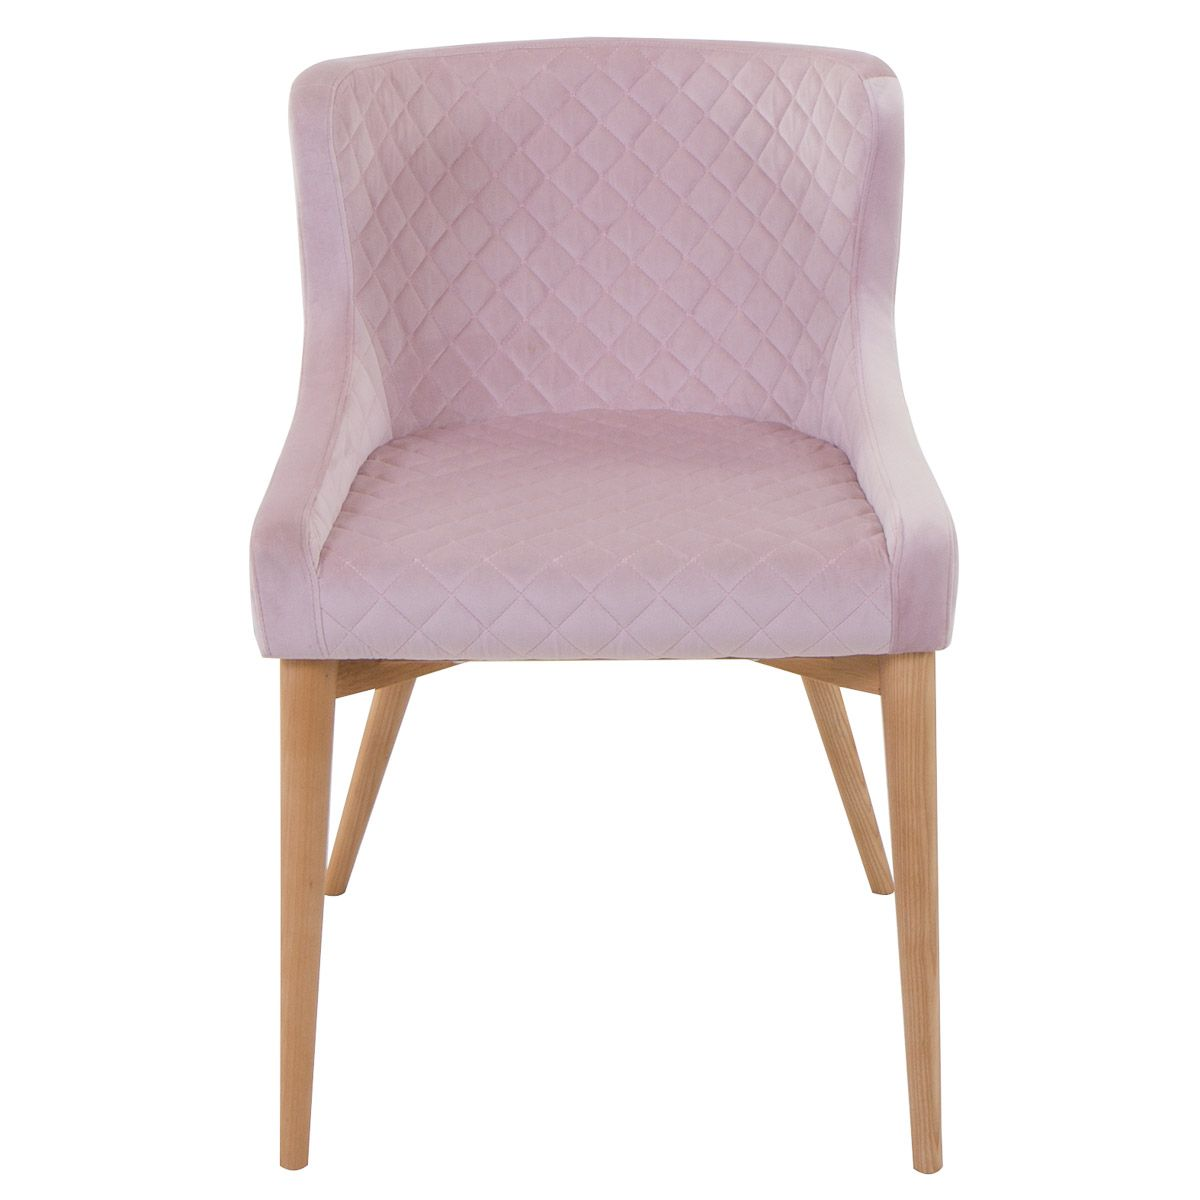 chaise style scandinave en velours rose poudr pi tement fr ne paris zago store. Black Bedroom Furniture Sets. Home Design Ideas